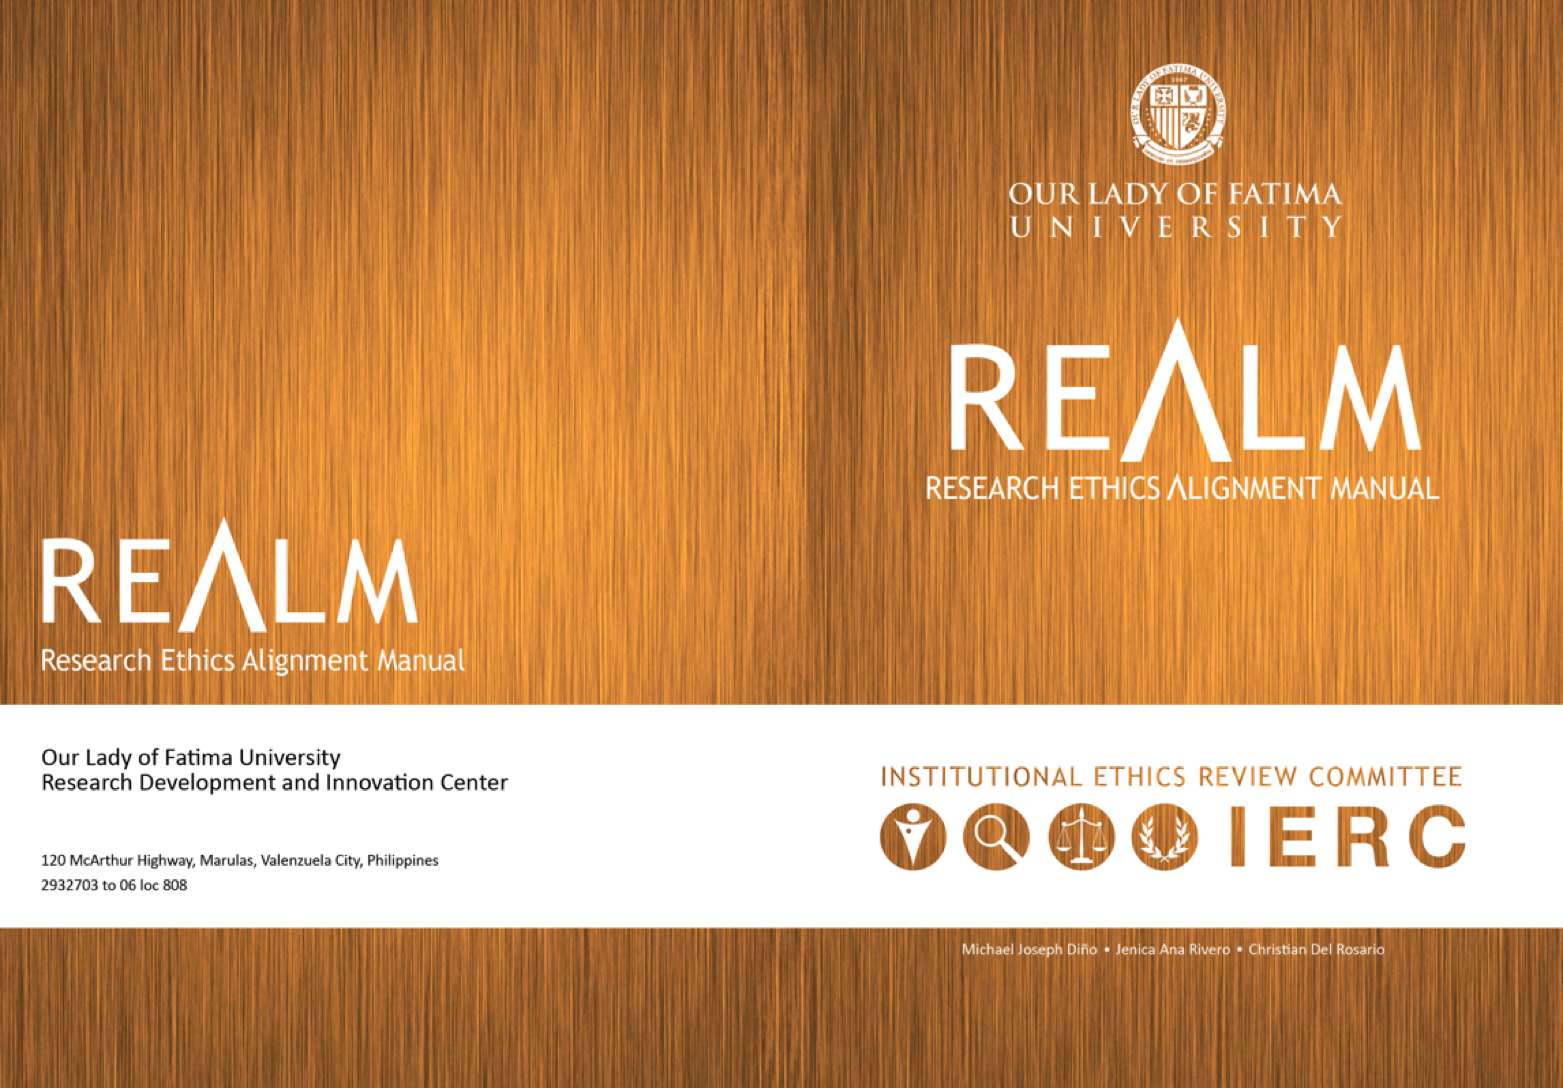 RESEARCH ETHICS ALIGNMENT MANUAL (REALM)